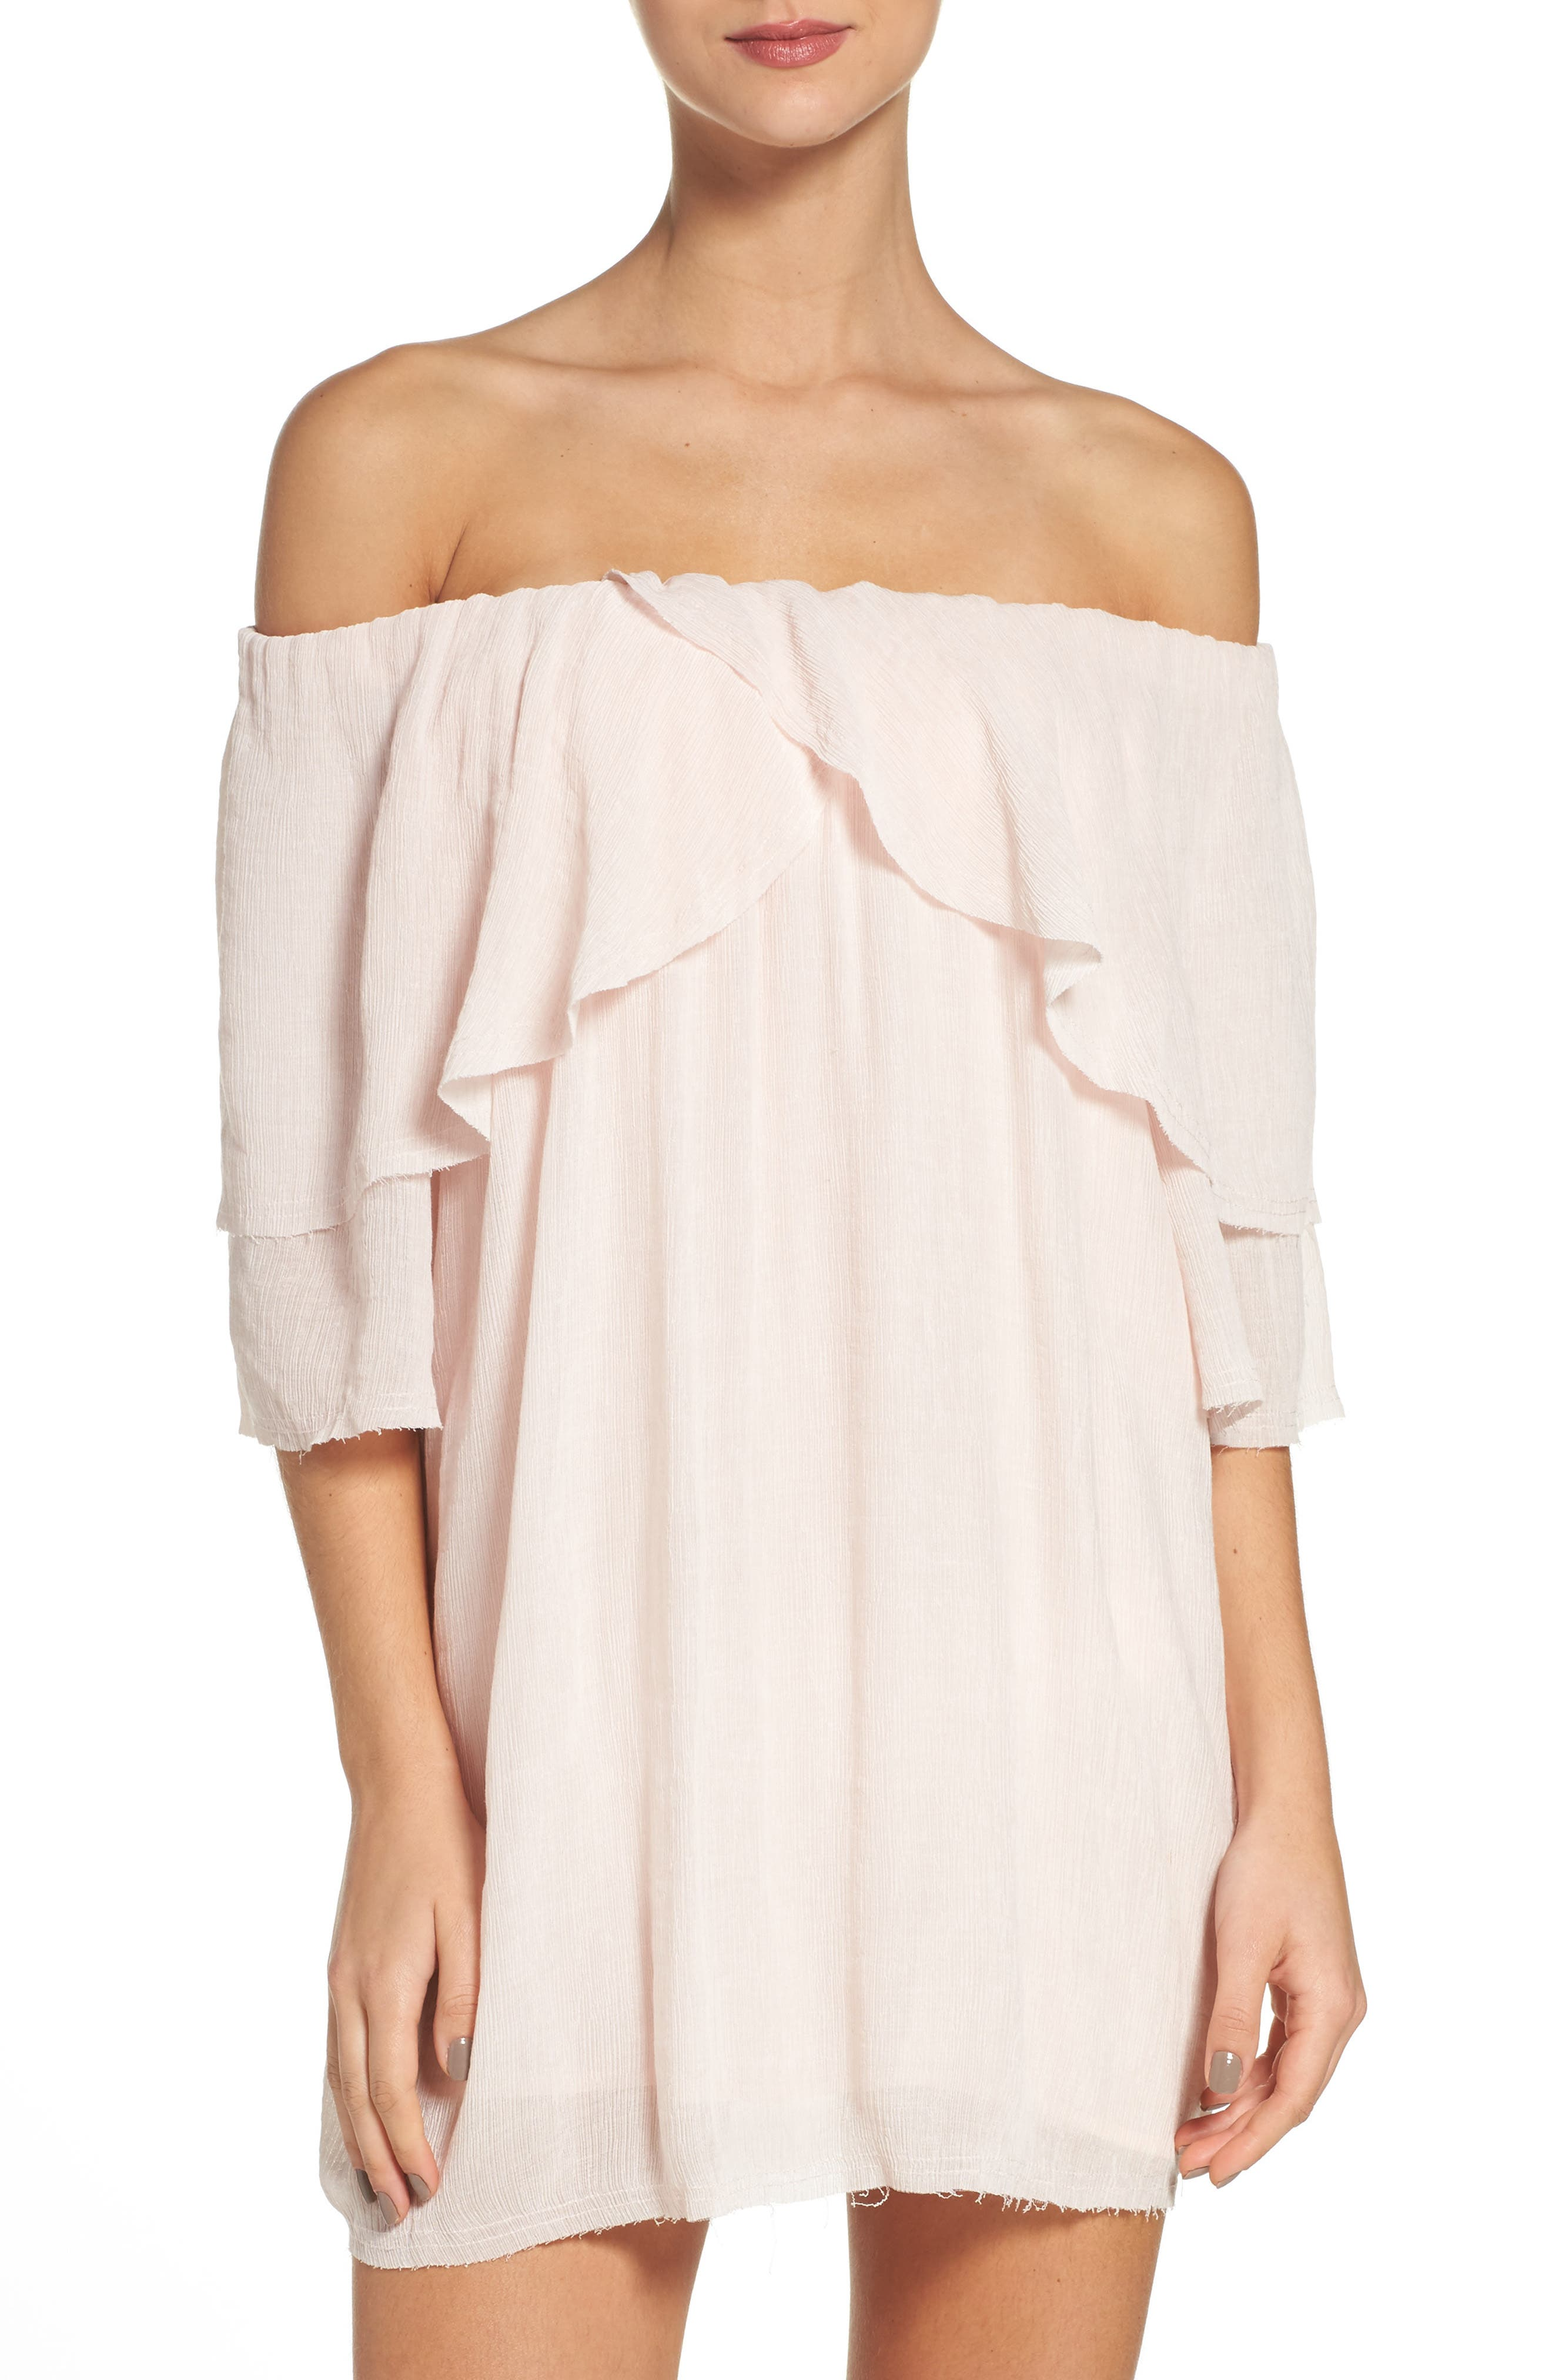 Suboo Perfect Day Off the Shoulder Cover-Up Dress